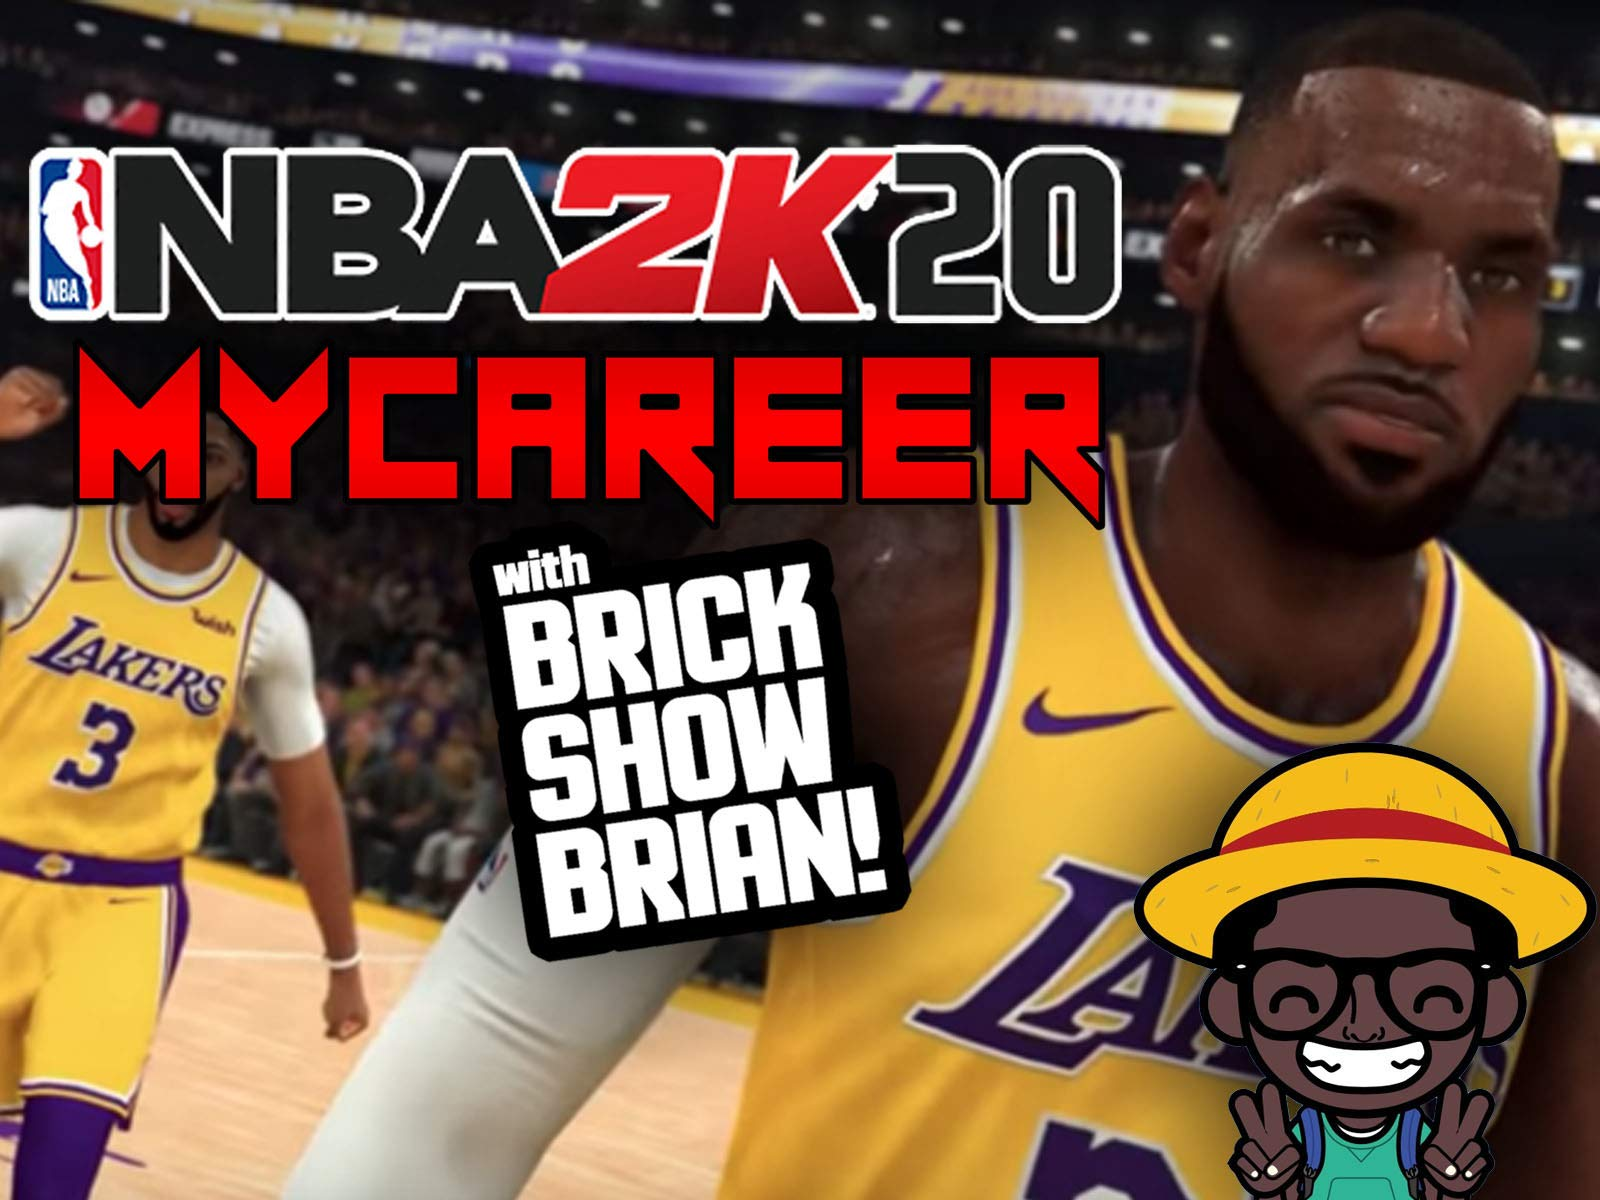 Watch Nba 2k20 My Career With Brick Show Brian Prime Video